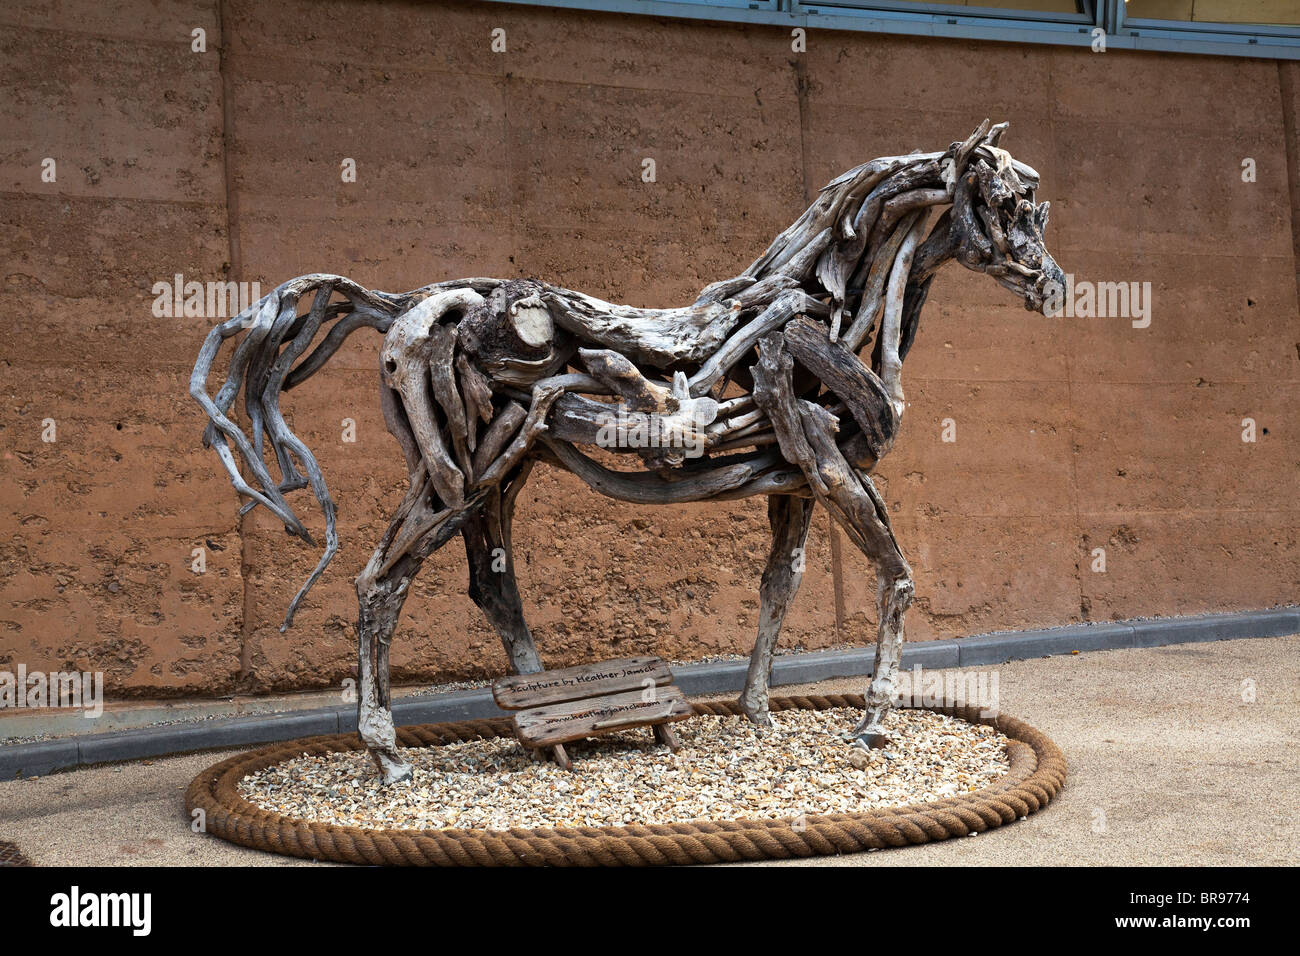 Wooden Horse Sculpture By Heather Jansch At The Eden Project Stock Photo Alamy